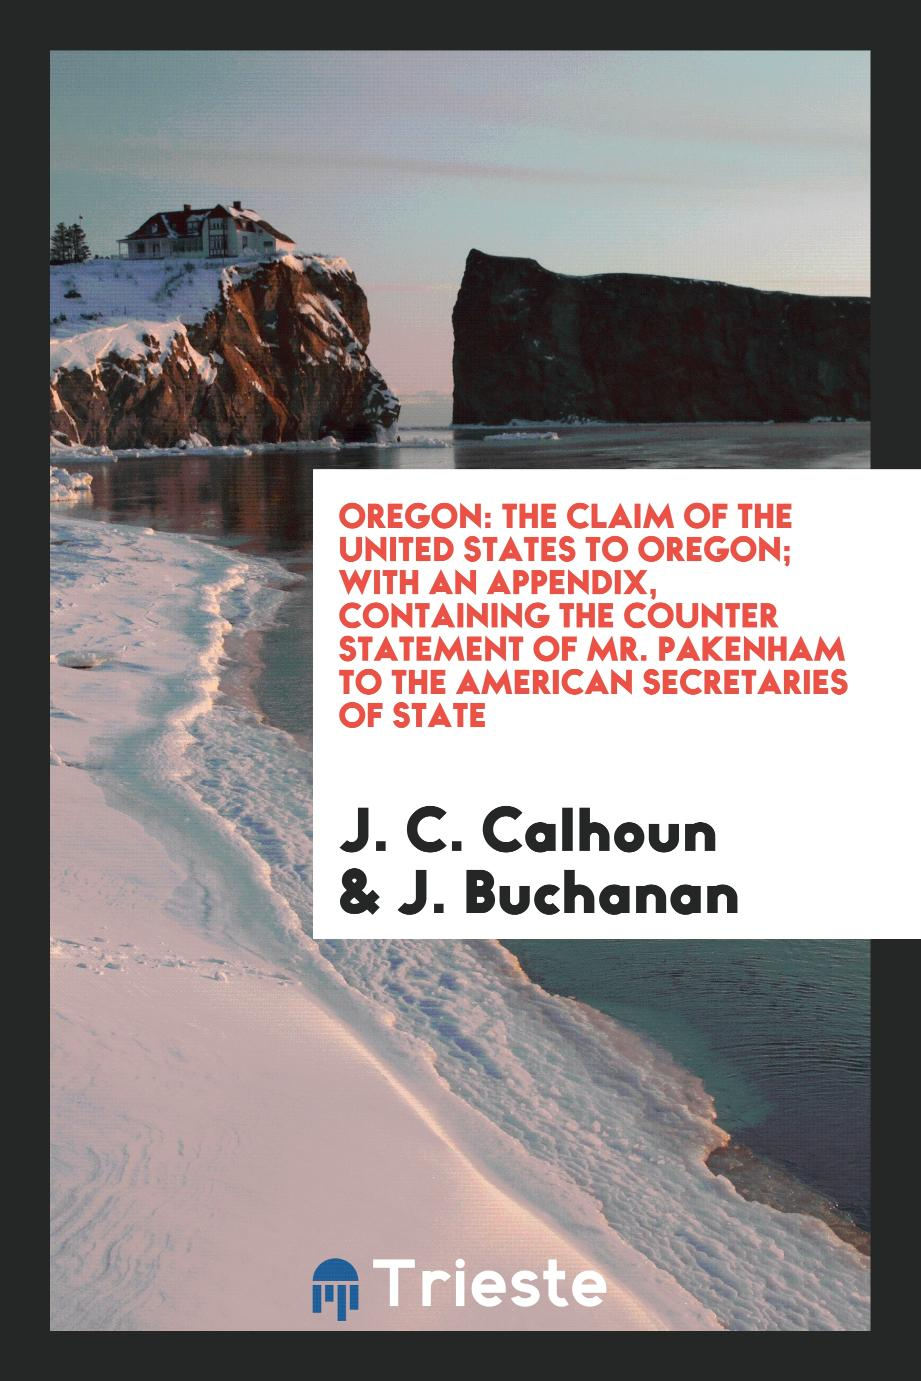 Oregon: The claim of the United States to Oregon; With an Appendix, containing the Counter Statement of Mr. Pakenham to the American Secretaries of State